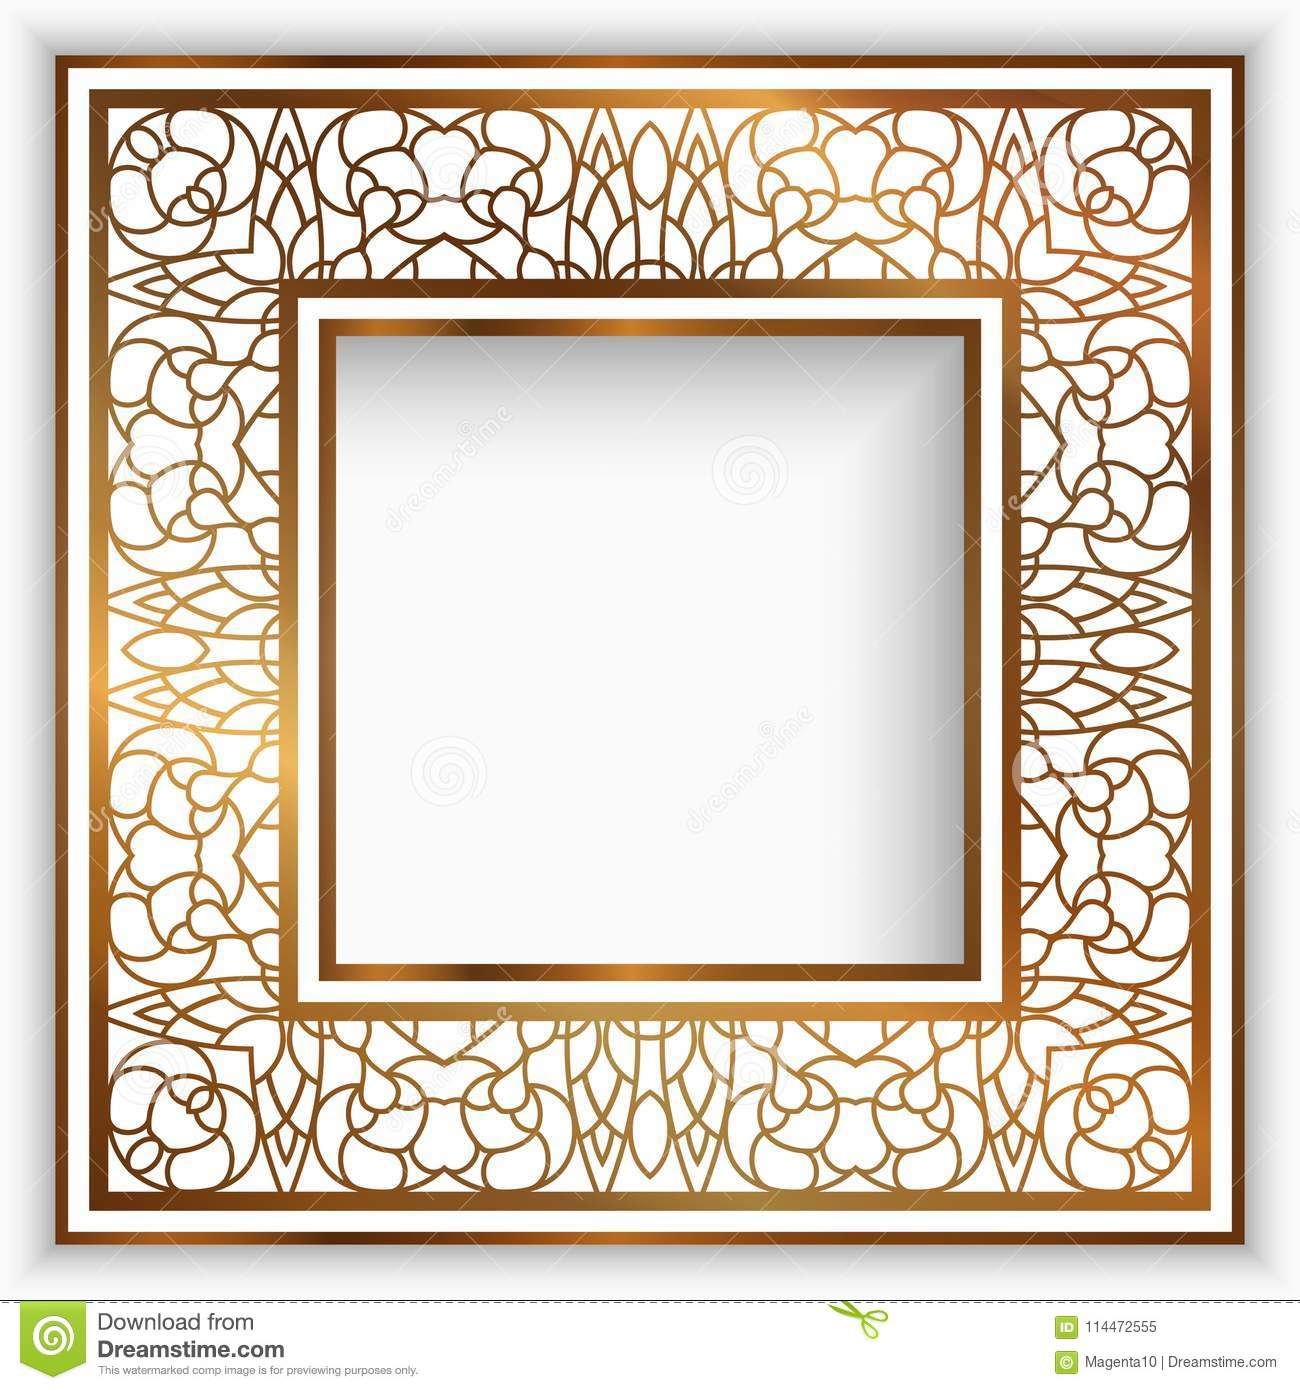 Square Frame With Gold Border Stock Vector - Illustration of